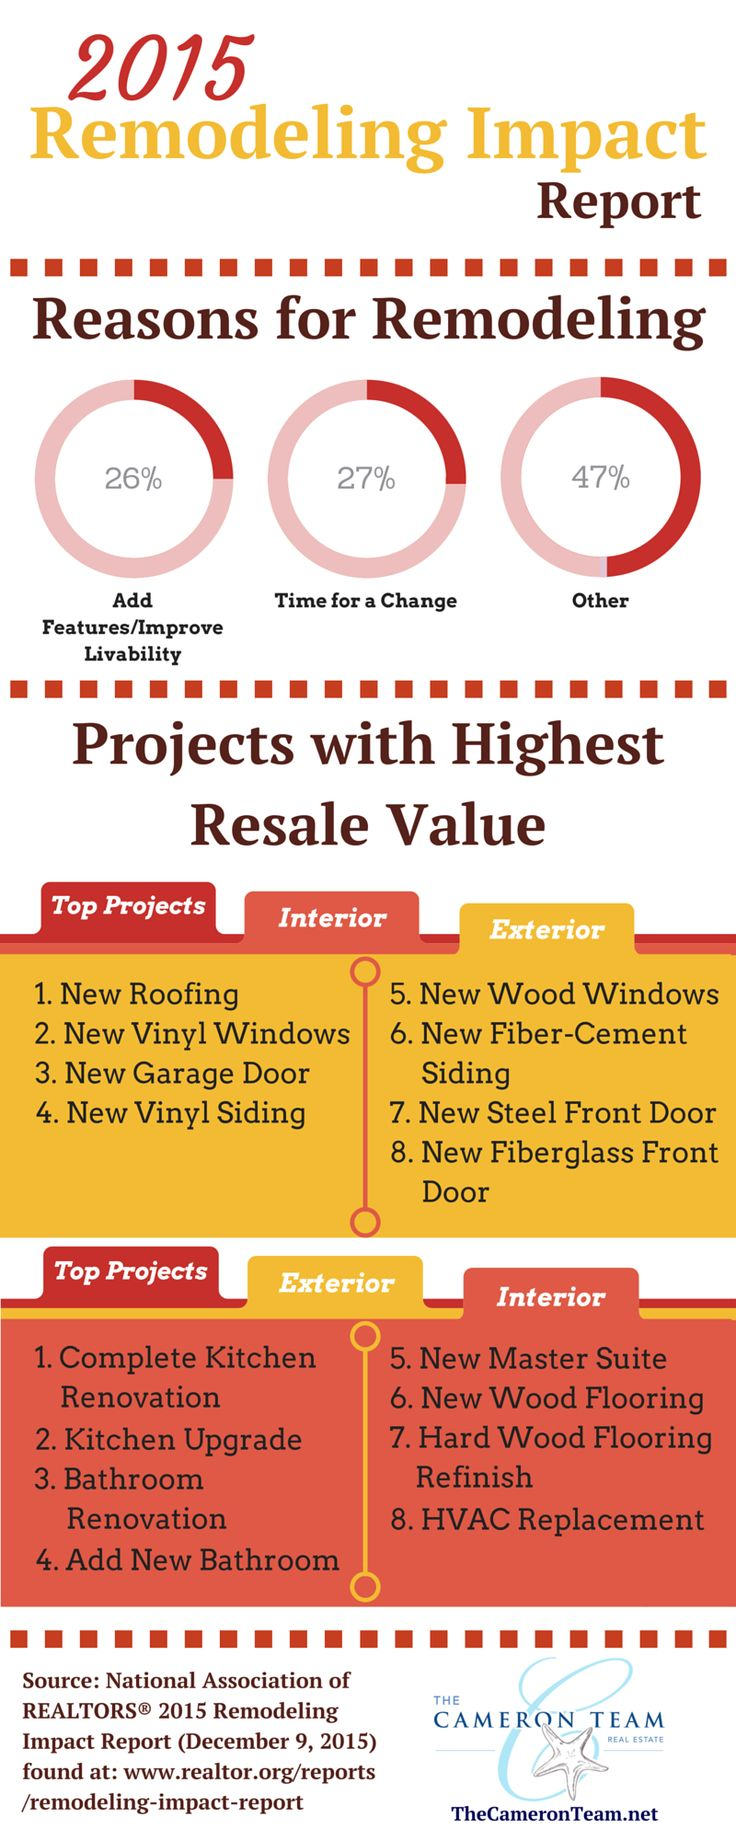 2015 Remodeling Impact Report. Link for more details at